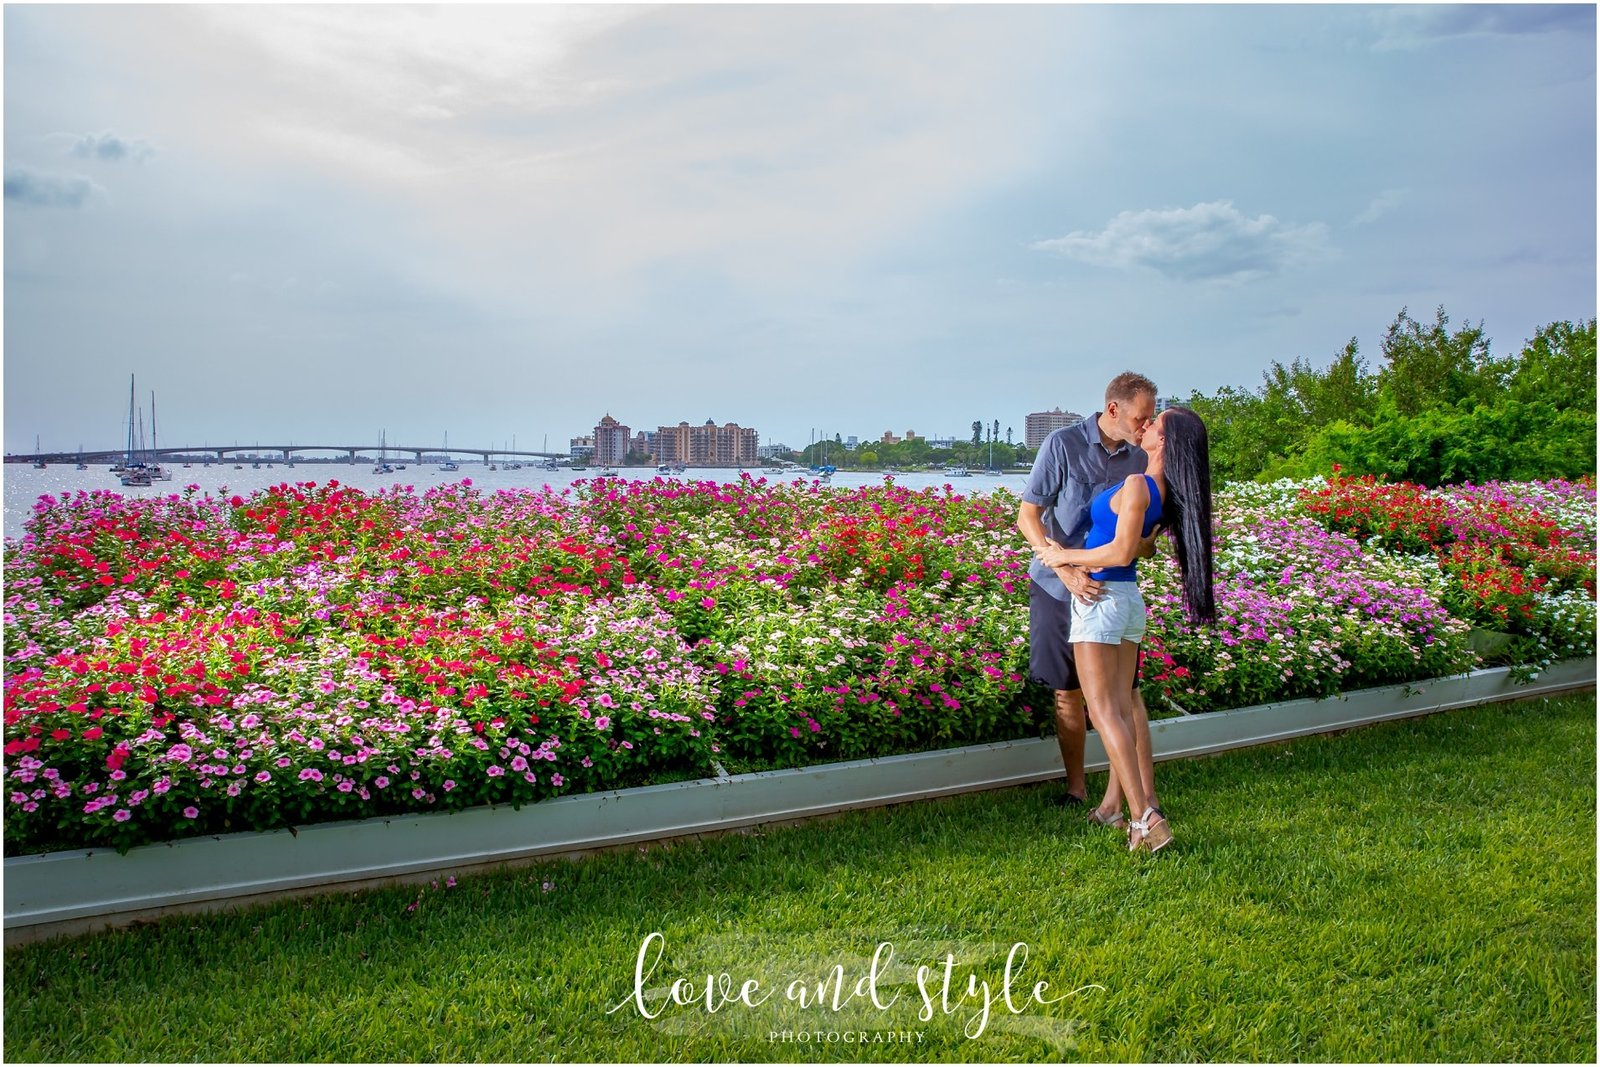 Engagement Photography at Selby Gardens in front of the flower beds with couple embracing and kissing